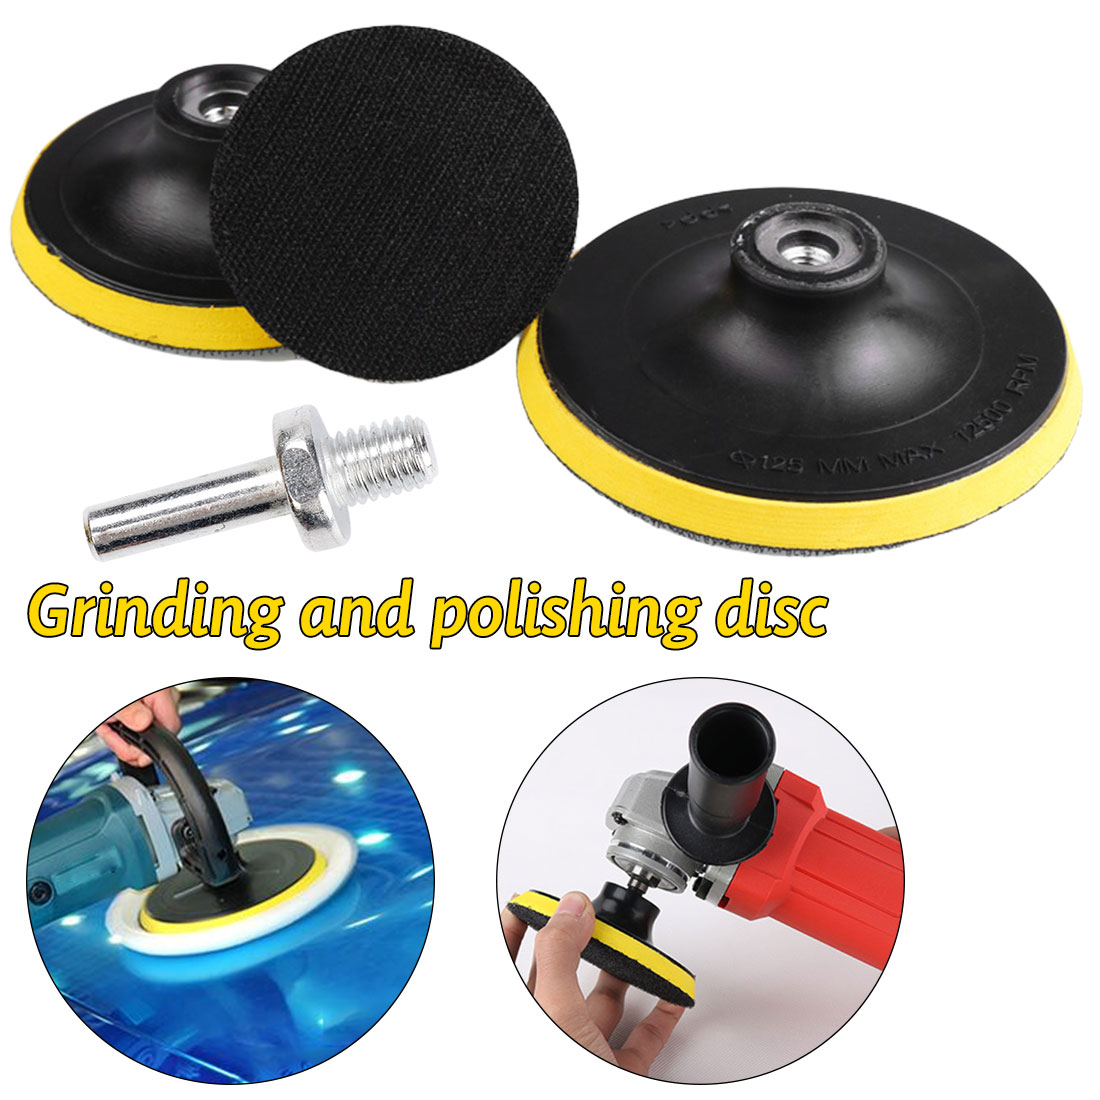 Polisher Machine Polishing Disc Sander Disc Disk Sandpaper Self-adhesive Sand Paper Pad Abrasive Tool With 8mm Diameter Drill